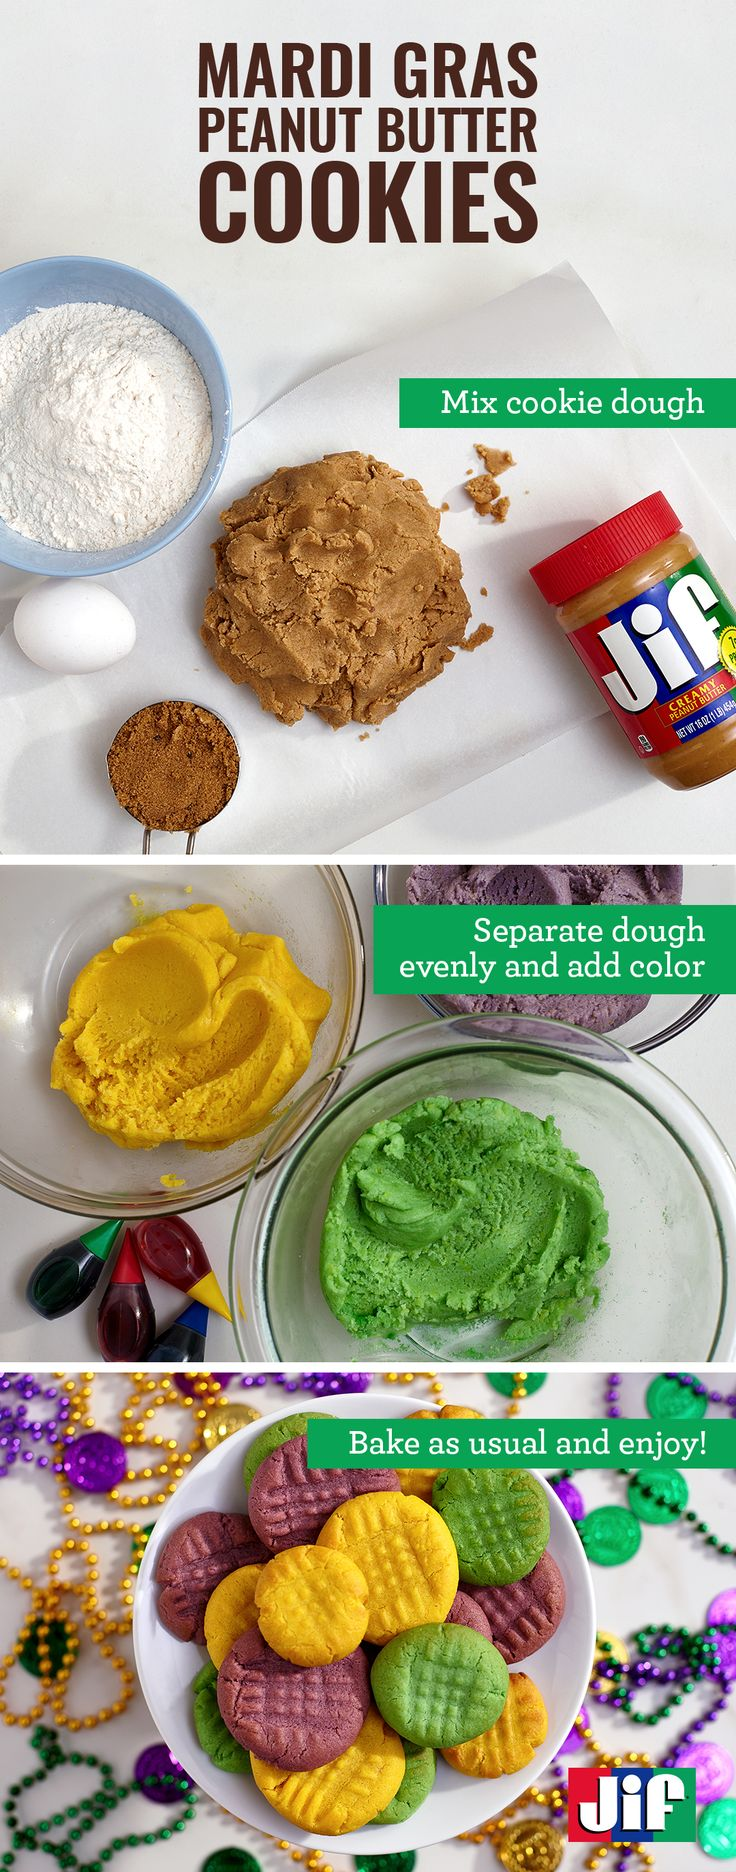 Transform our Irresistible Peanut Butter Cookies into a Mardi Gras dessert with a few quick and easy steps. Divide your cookie mix into three bowls, add green, yellow and purple food coloring and bake. You will have festive treats in 24 minutes.